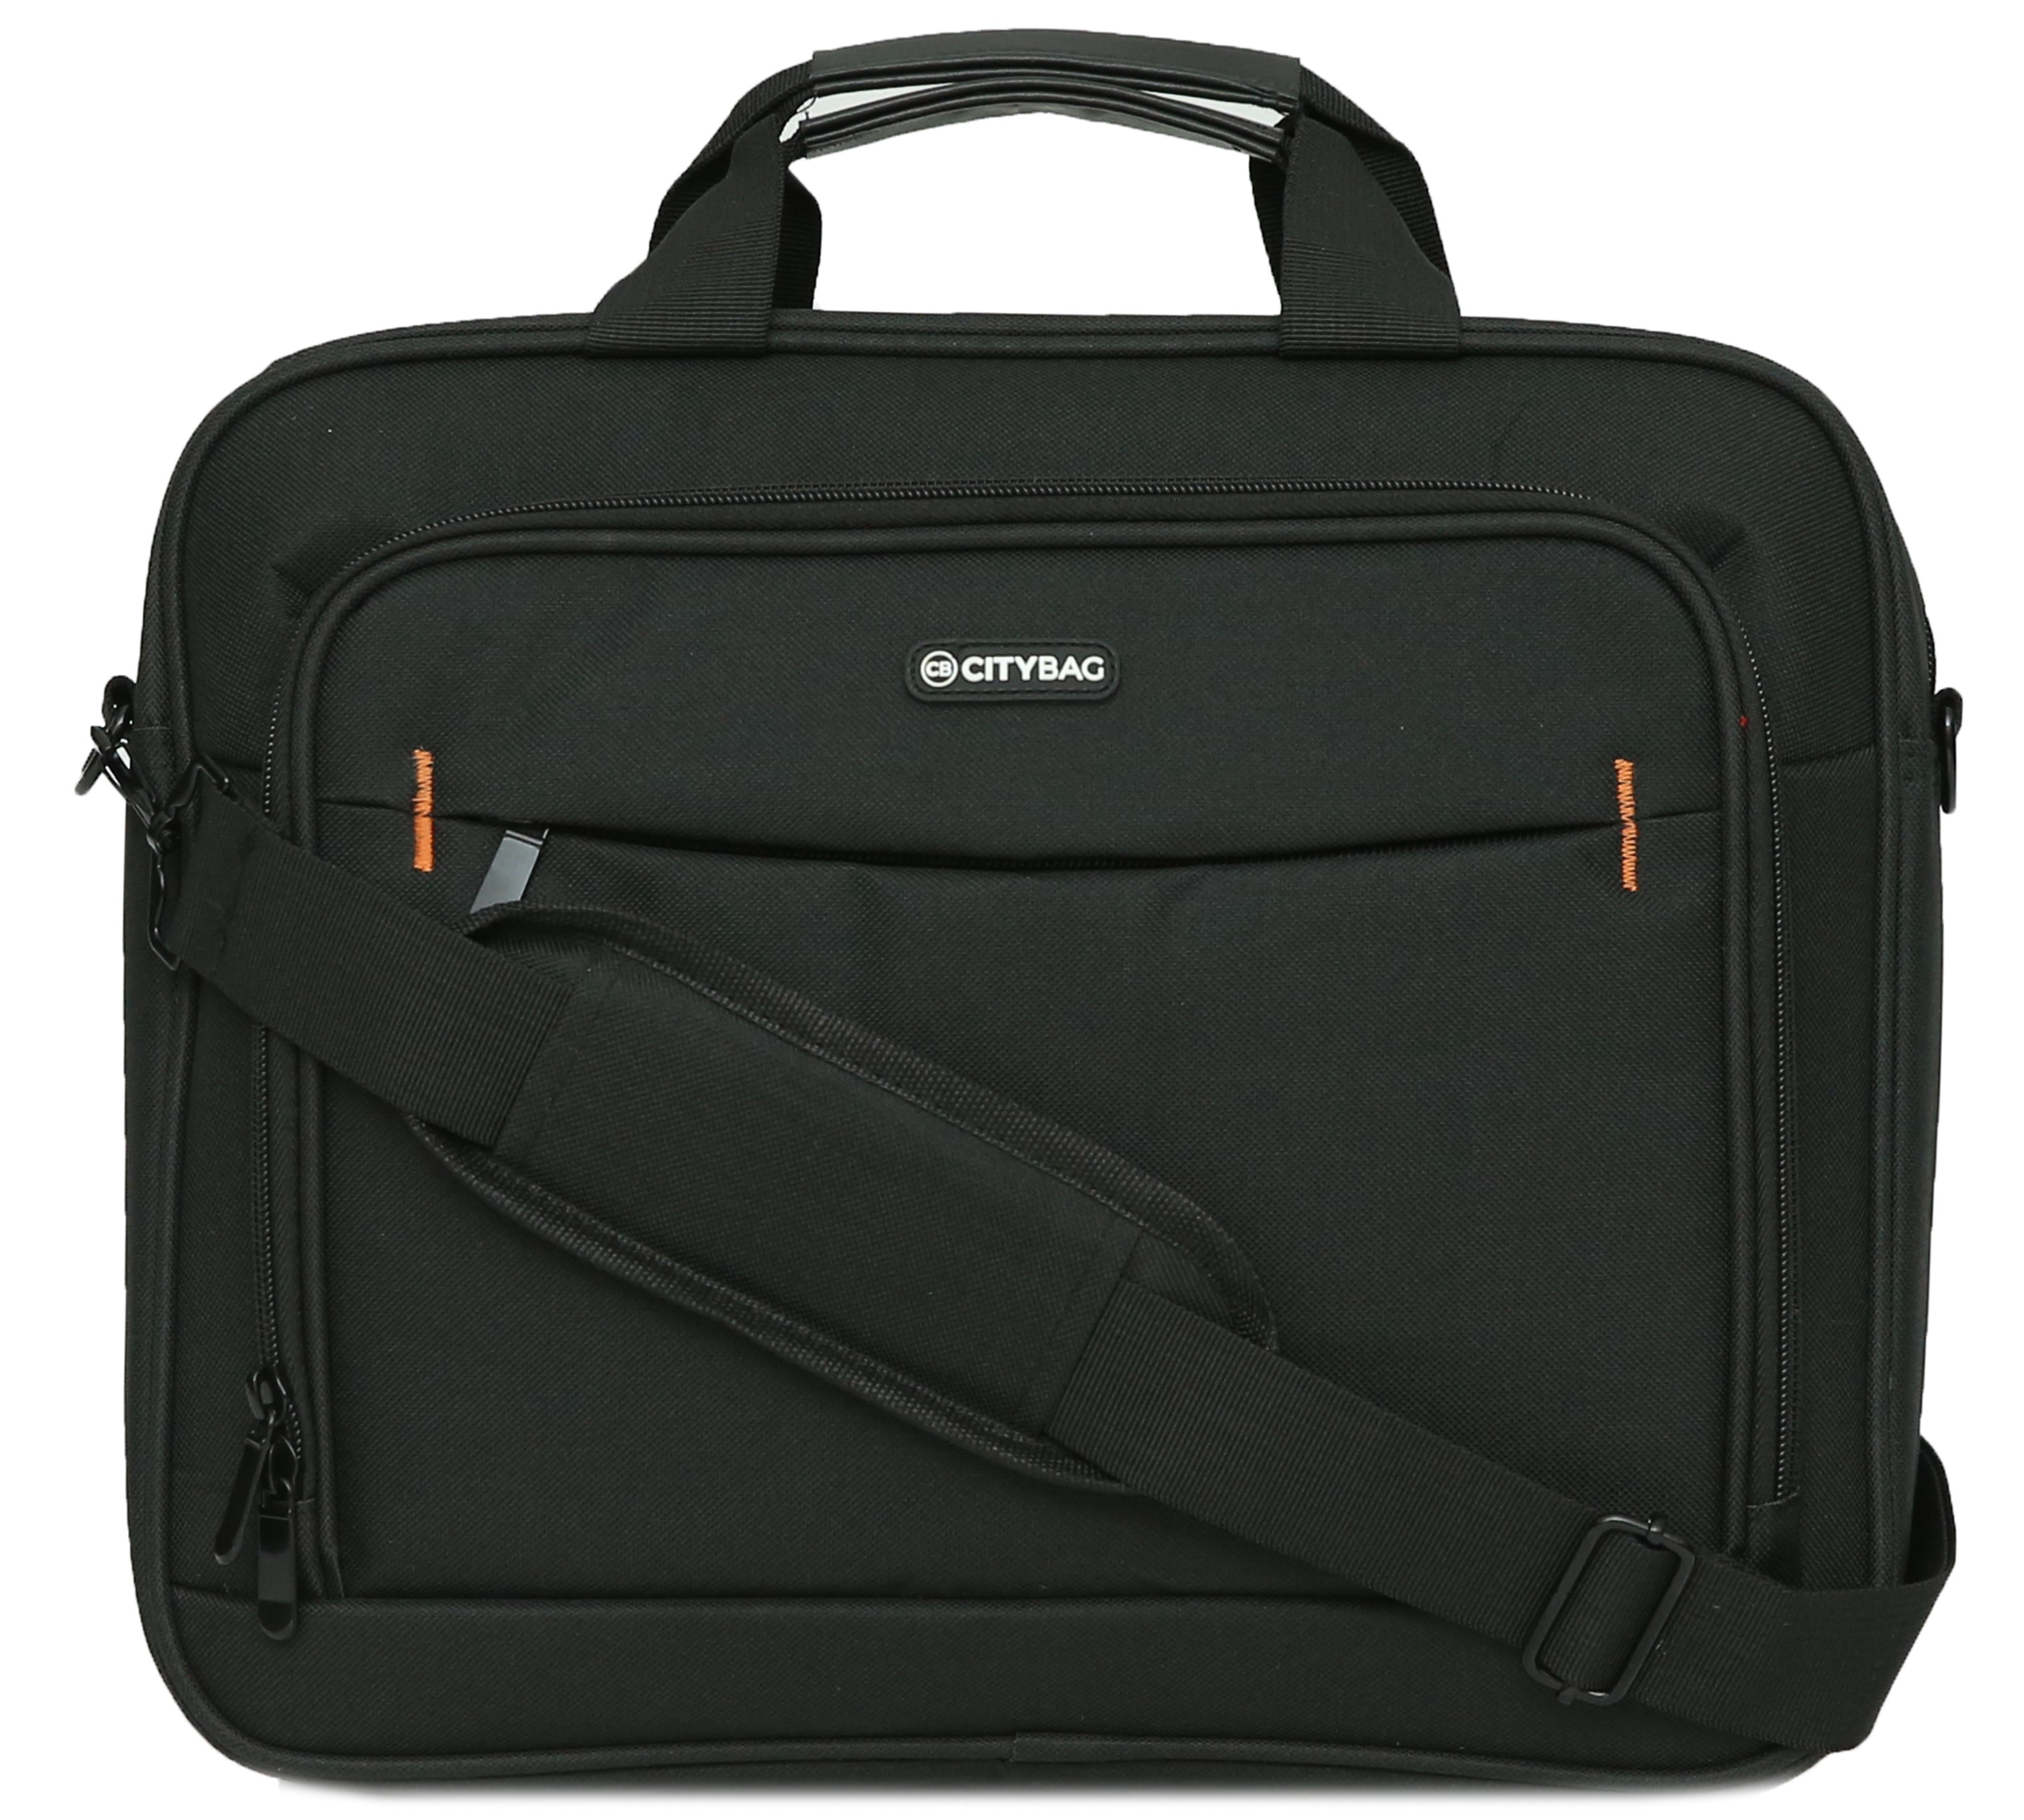 Business Briefcase City Bag Laptop and Tablet Case